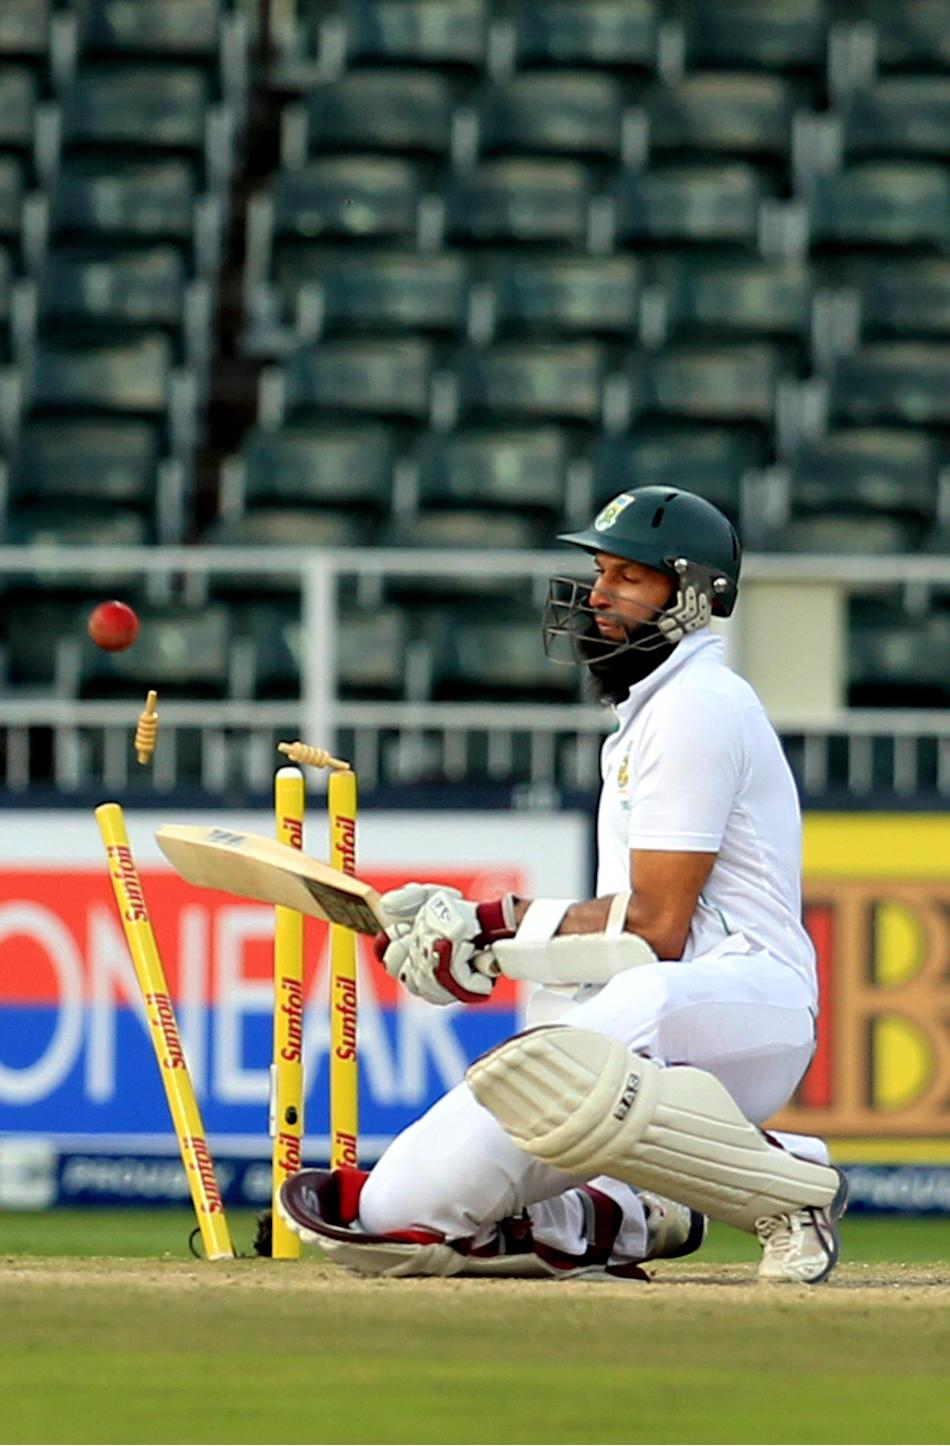 South African player Hashim Amla after bowled by Mohammed Shami during the 4th day of 1st Test match between India and South Africa at Wanderers in Johannesburg on Dec. 21, 2013. (Photo: IANS)